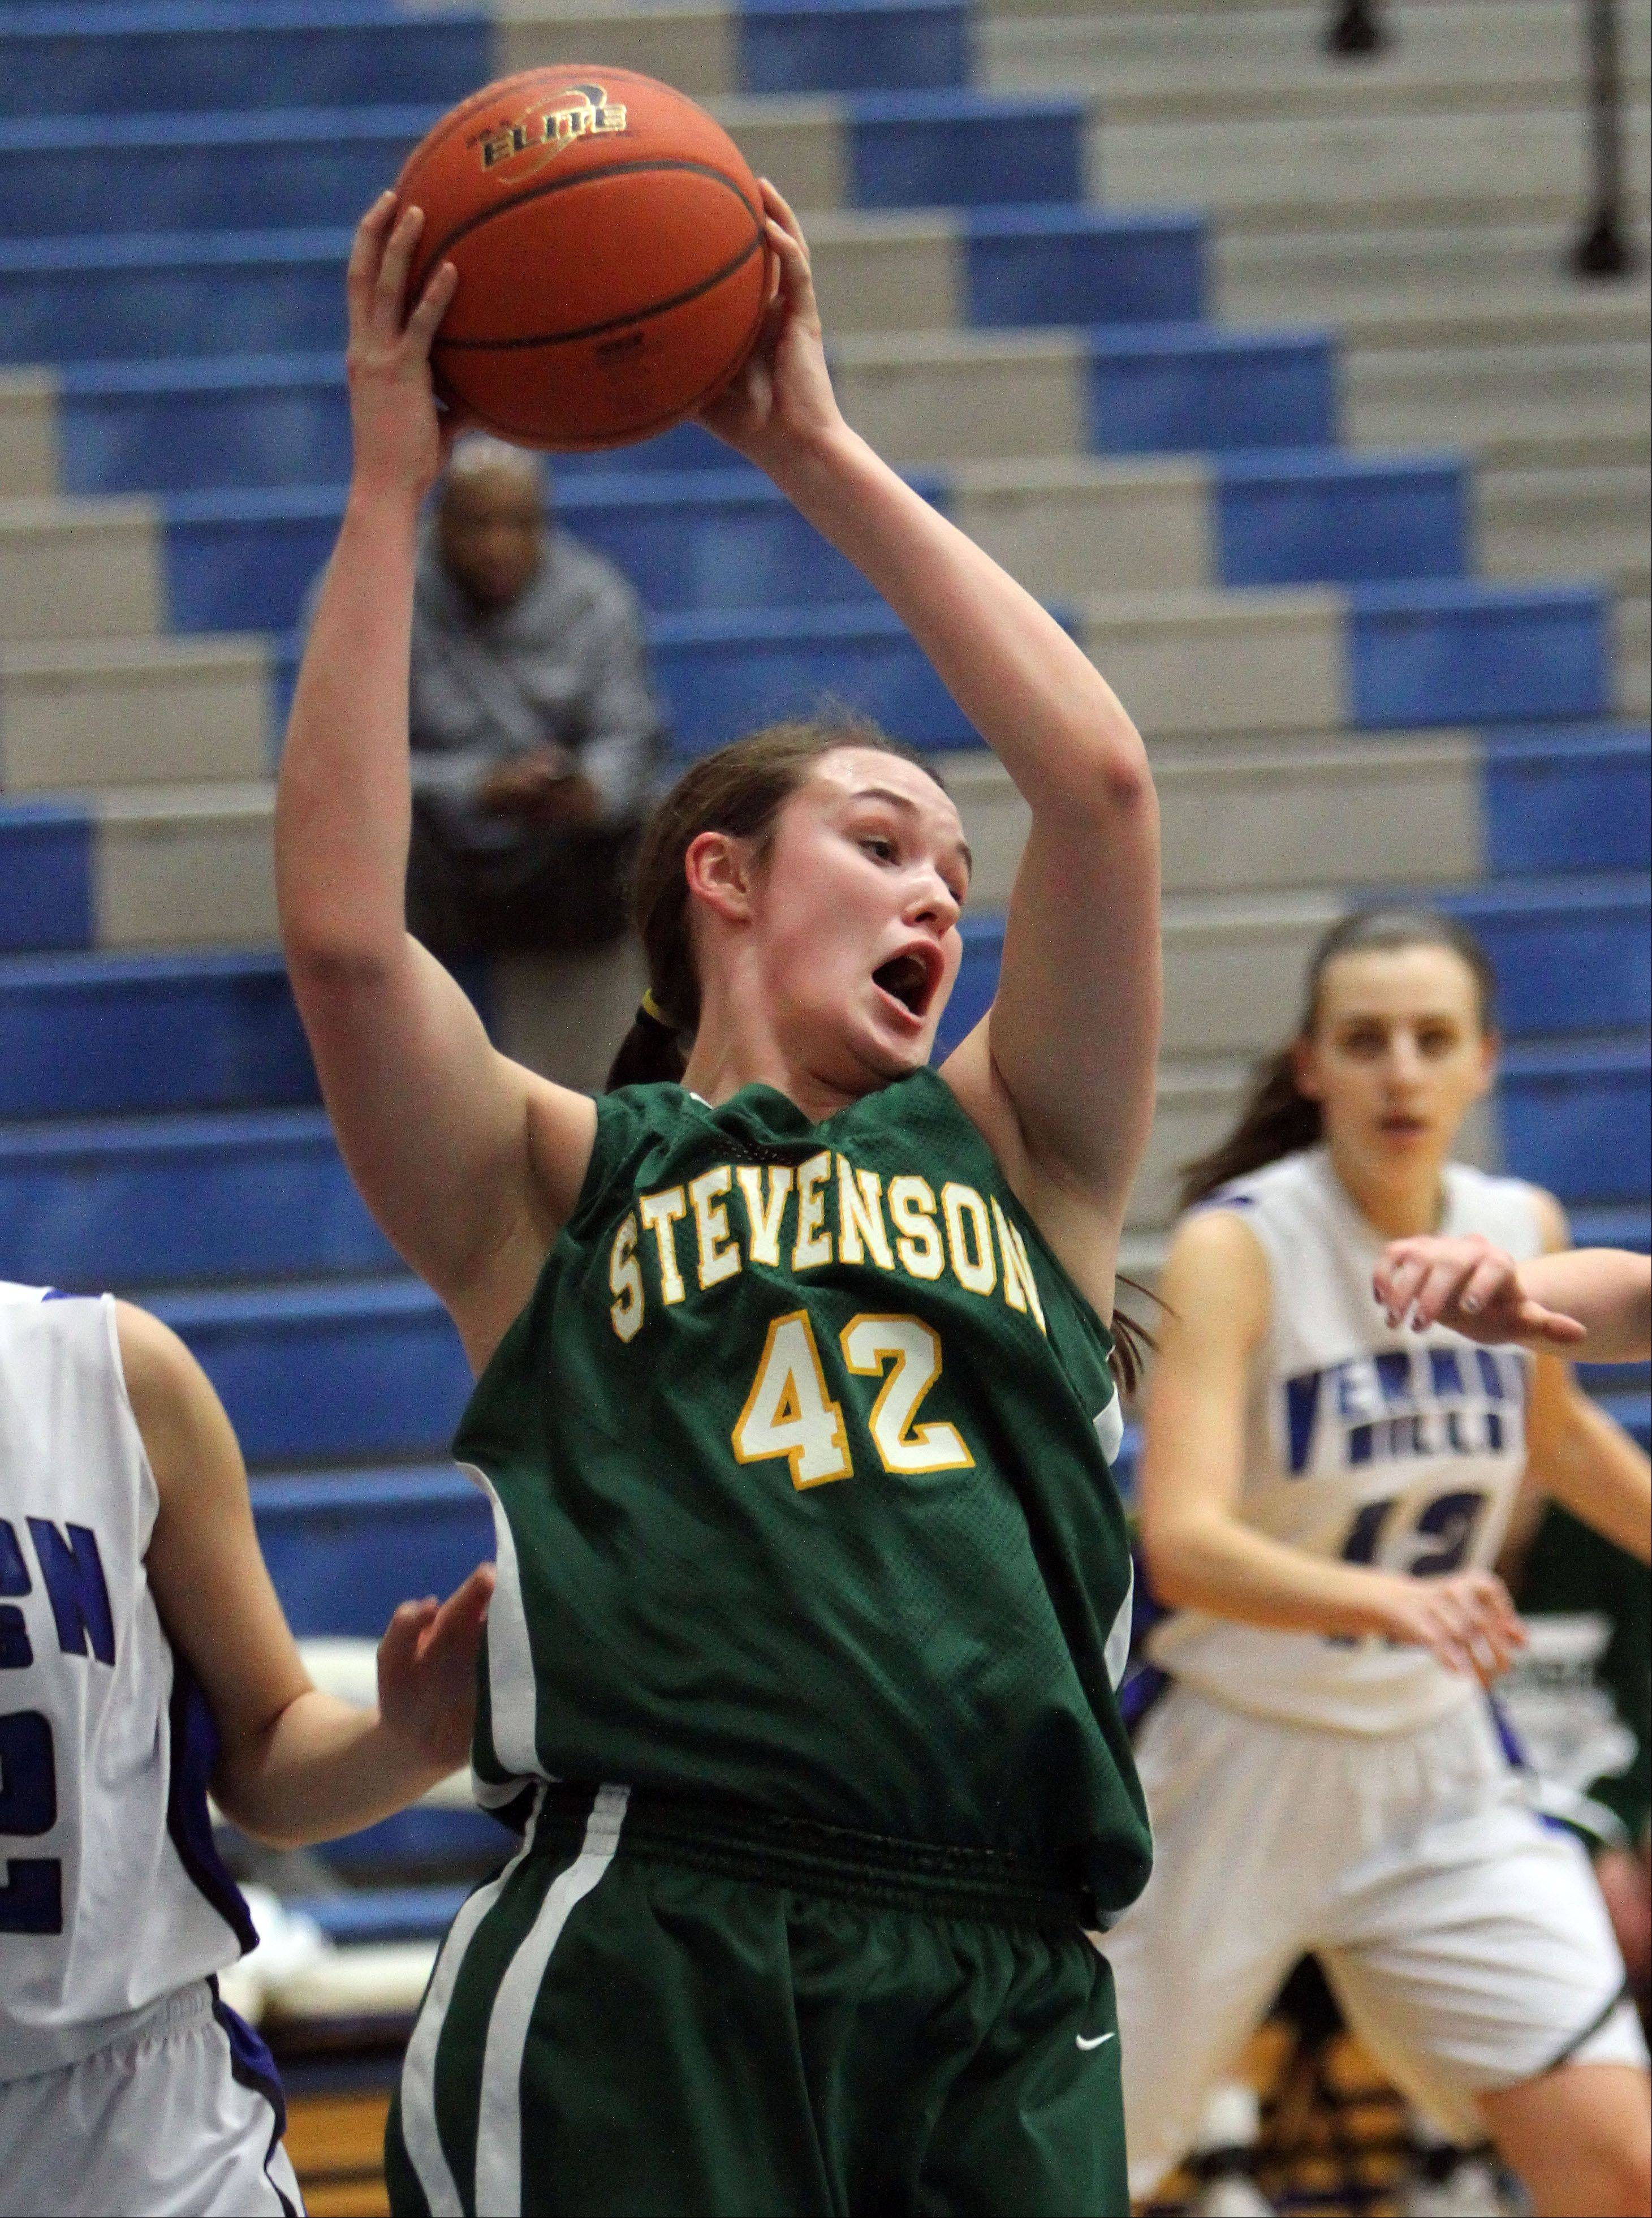 Fired-up Stevenson tops Vernon Hills